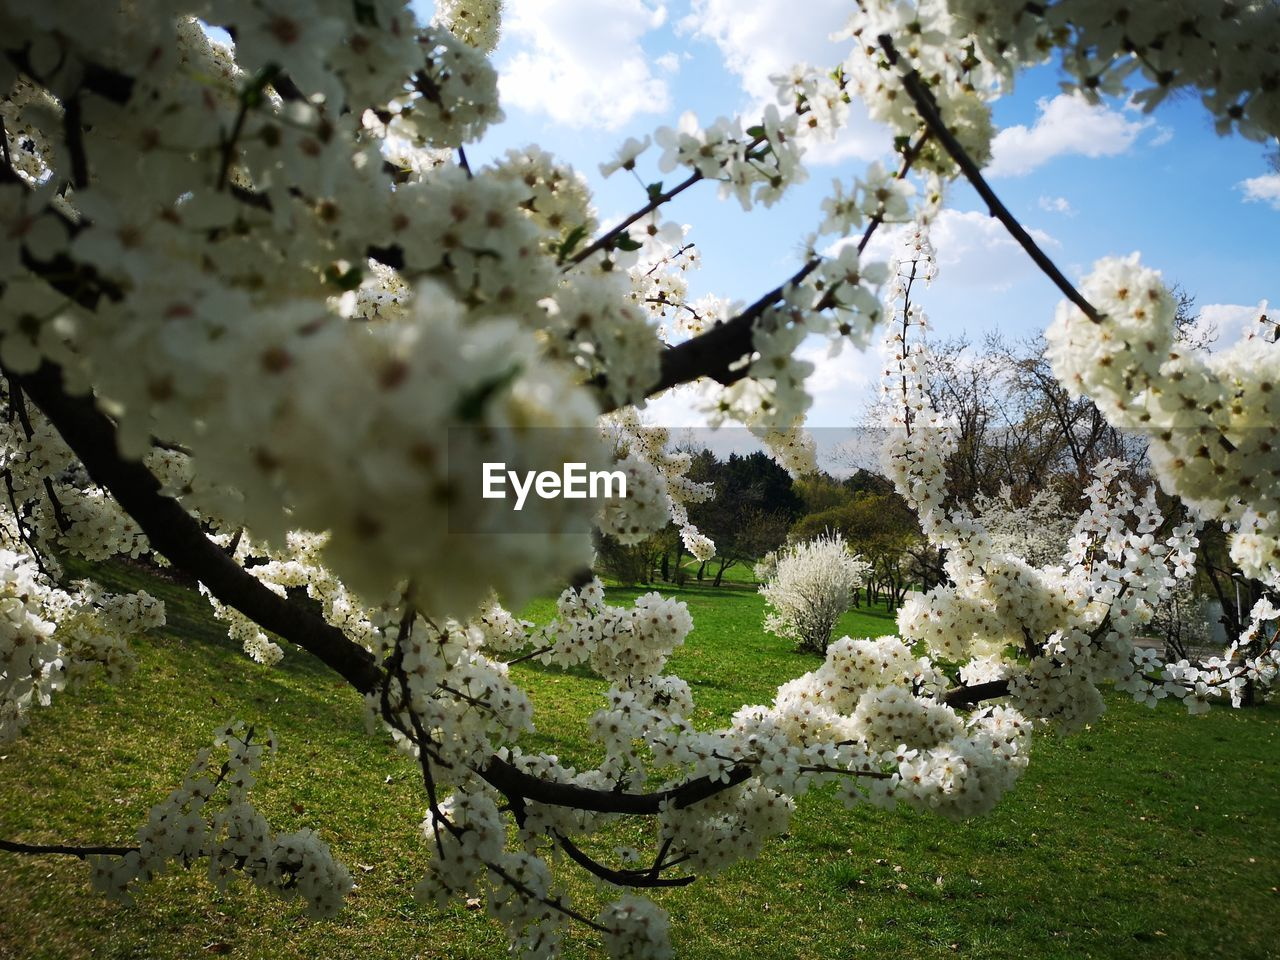 plant, flowering plant, flower, growth, fragility, tree, vulnerability, blossom, beauty in nature, springtime, branch, freshness, day, nature, cherry blossom, white color, no people, apple tree, fruit tree, orchard, cherry tree, outdoors, flower head